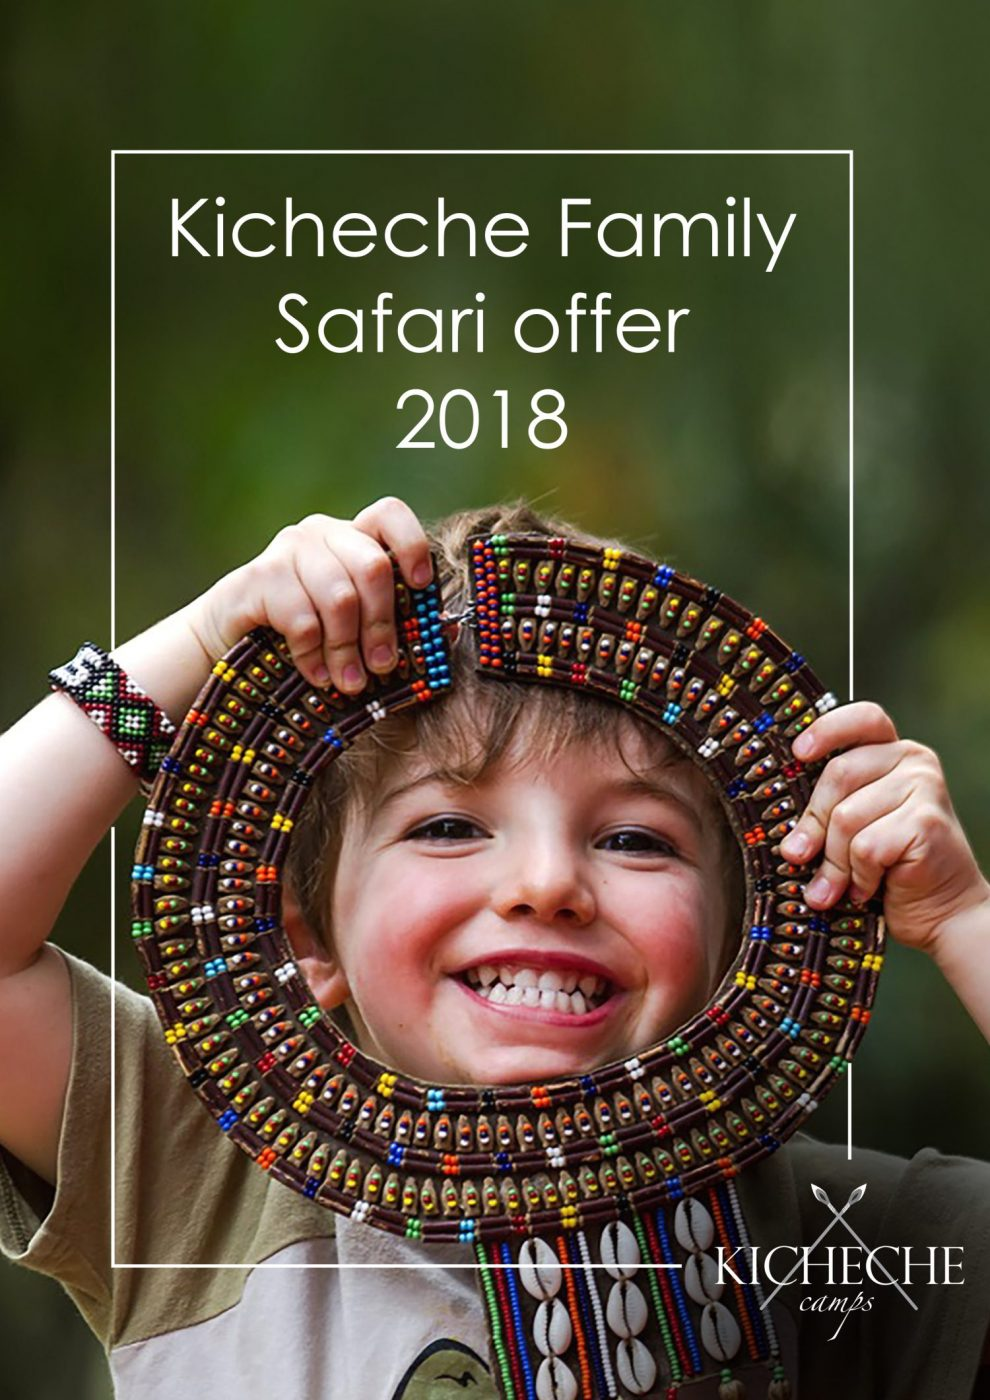 Kicheche Conservancy Collection Family offer '18